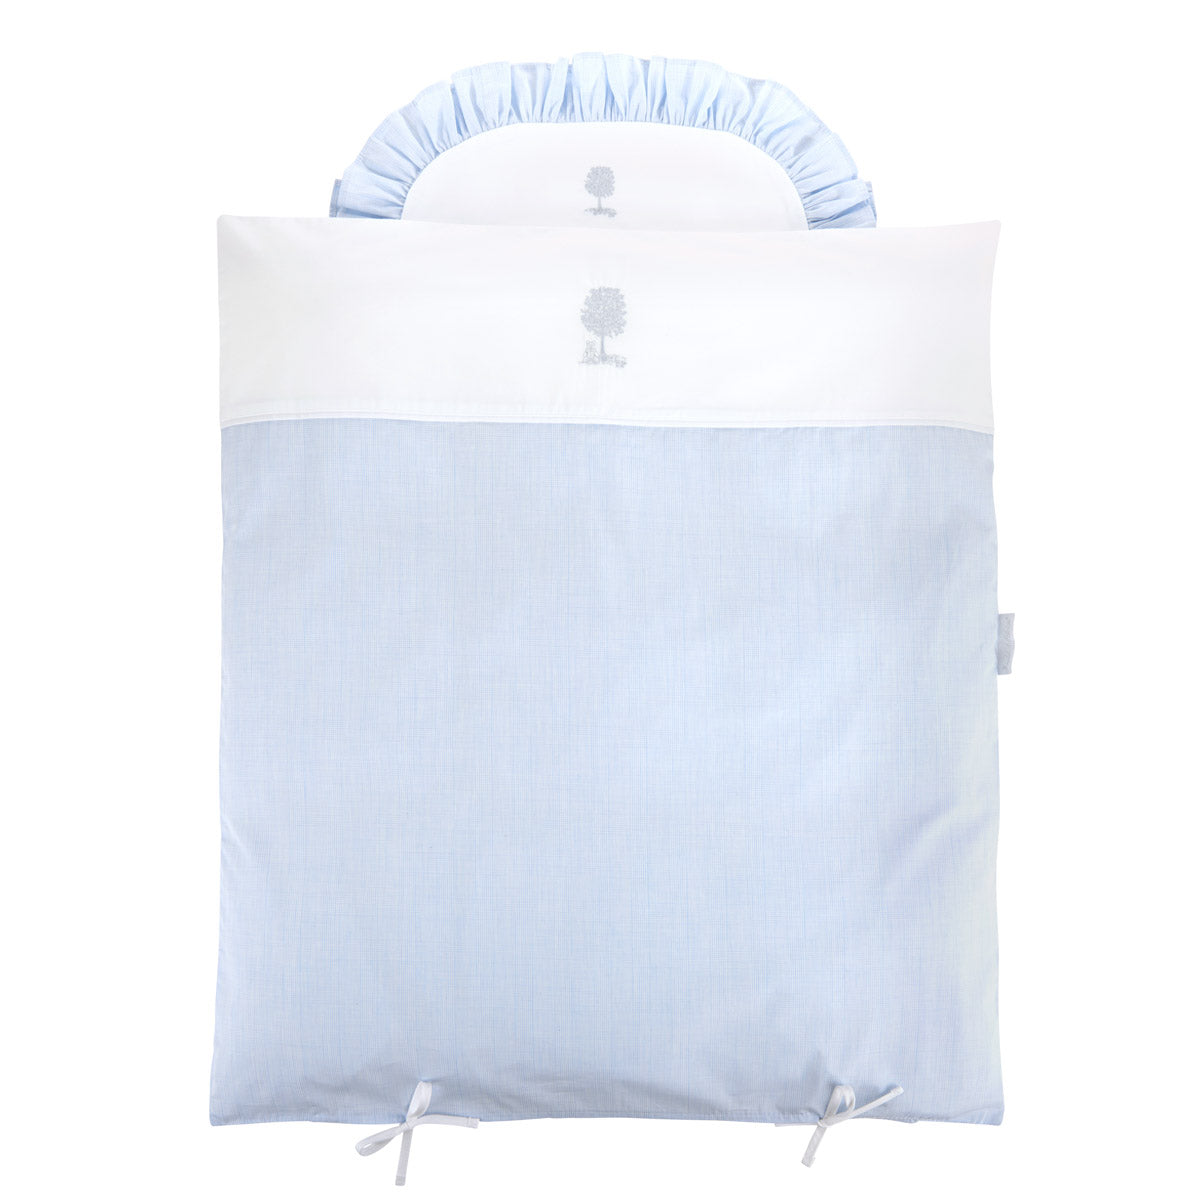 Theophile & Patachou Cradle Duvet Cover and Pillowcase - Sweet Blue